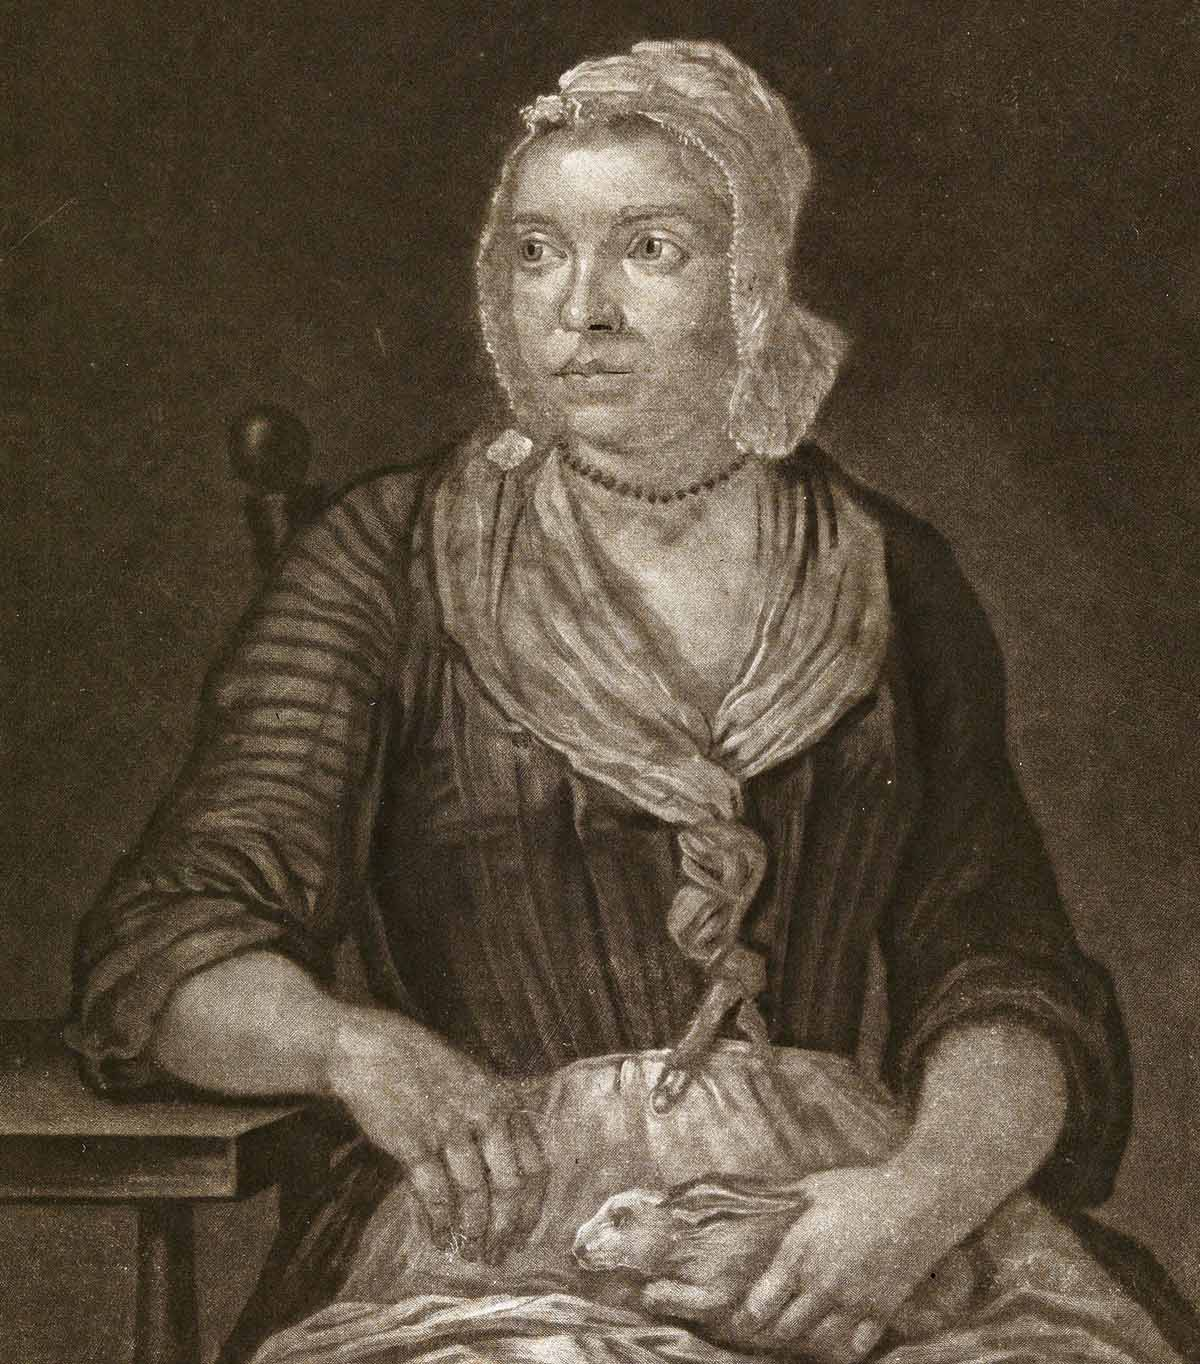 'Mary Toft of Godelman the pretended rabbit breeder', mezzotint by J. Faber, c.1726. Wellcome Images.